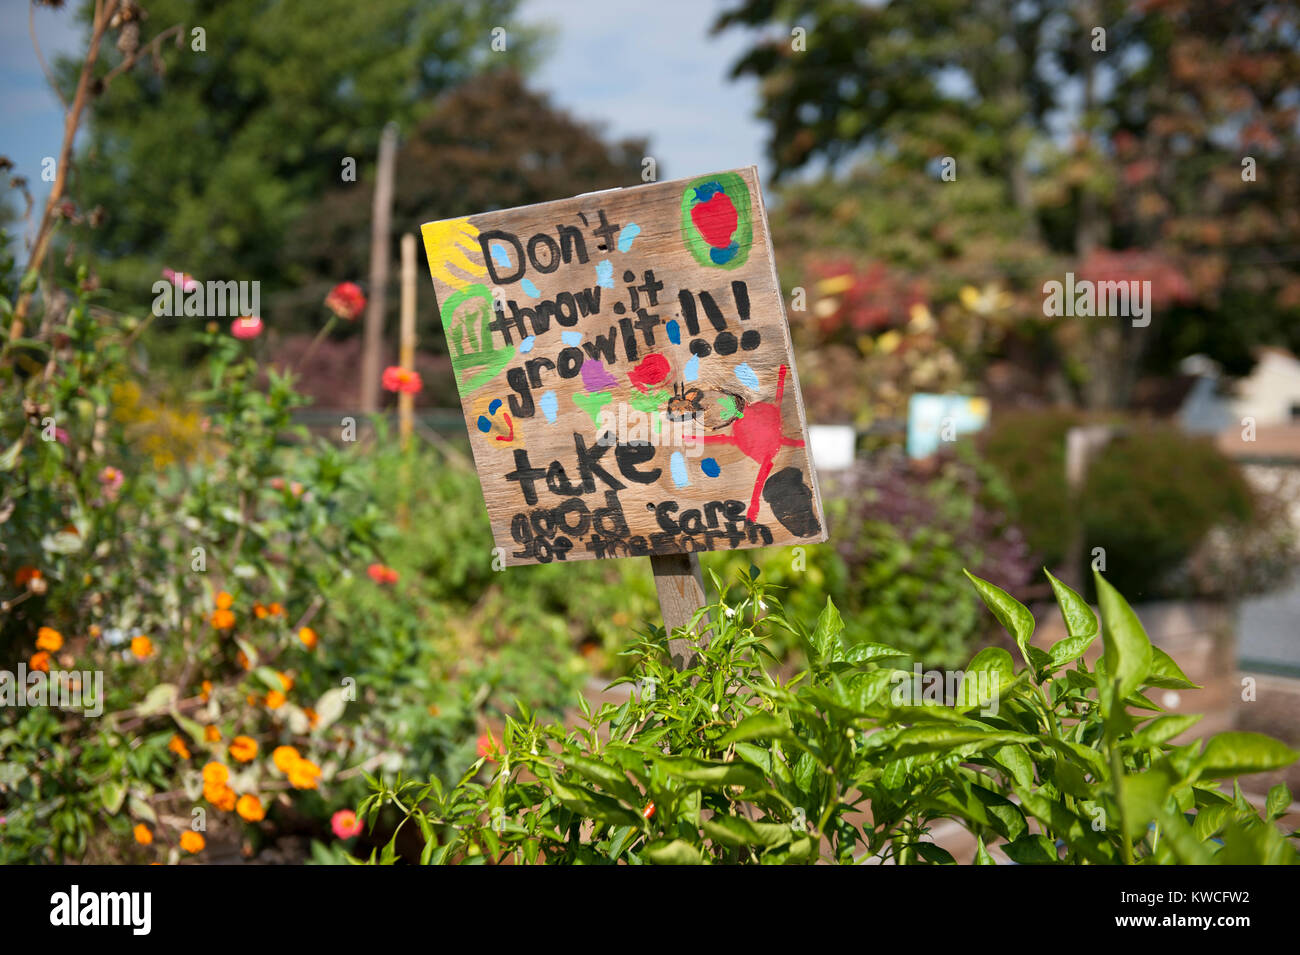 SIGN IN RAISED BED GARDENS IN SCHOOL YARD - Stock Image